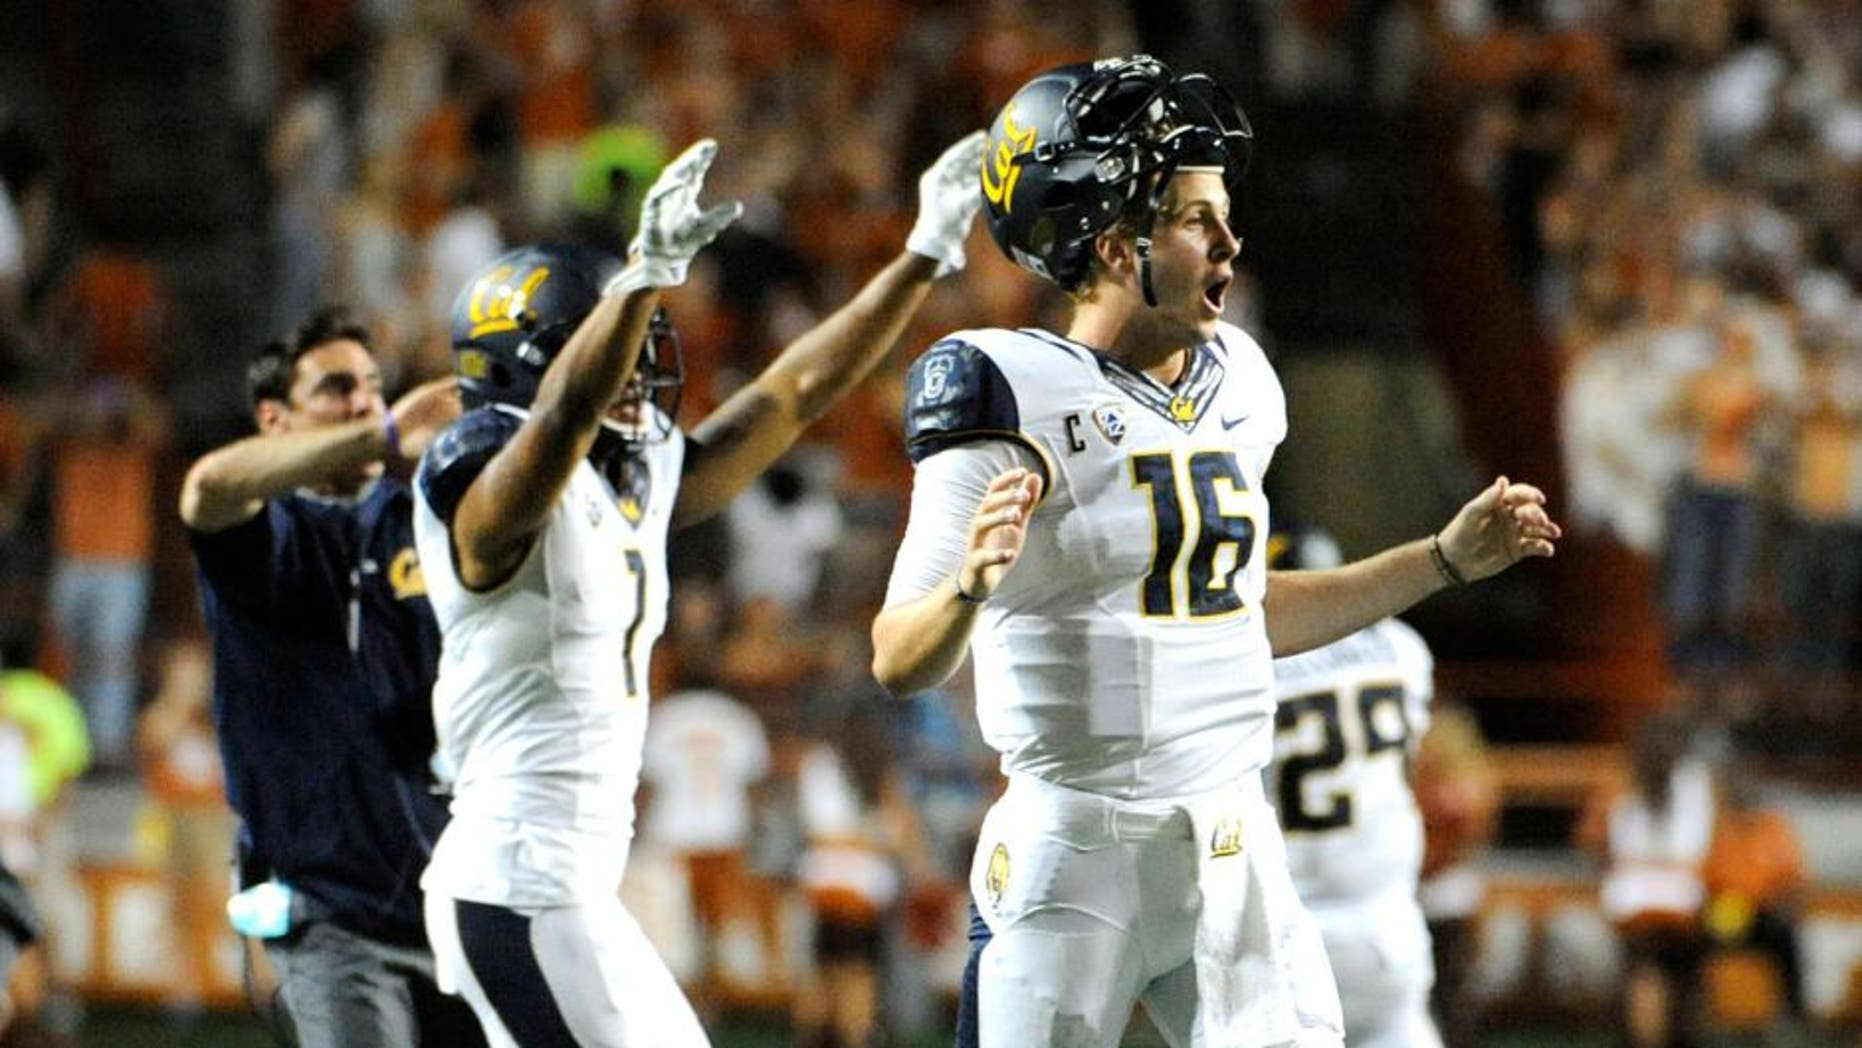 Sep 19, 2015; Austin, TX, USA; California Golden Bears quarterback Jared Goff (16) and wide receiver Bryce Treggs (1) react after the Texas Longhorns miss an extra point that would tie the game at 45 during the fourth quarter at Darrell K Royal-Texas Memorial Stadium. Cal beat Texas 45-44. Mandatory Credit: Brendan Maloney-USA TODAY Sports